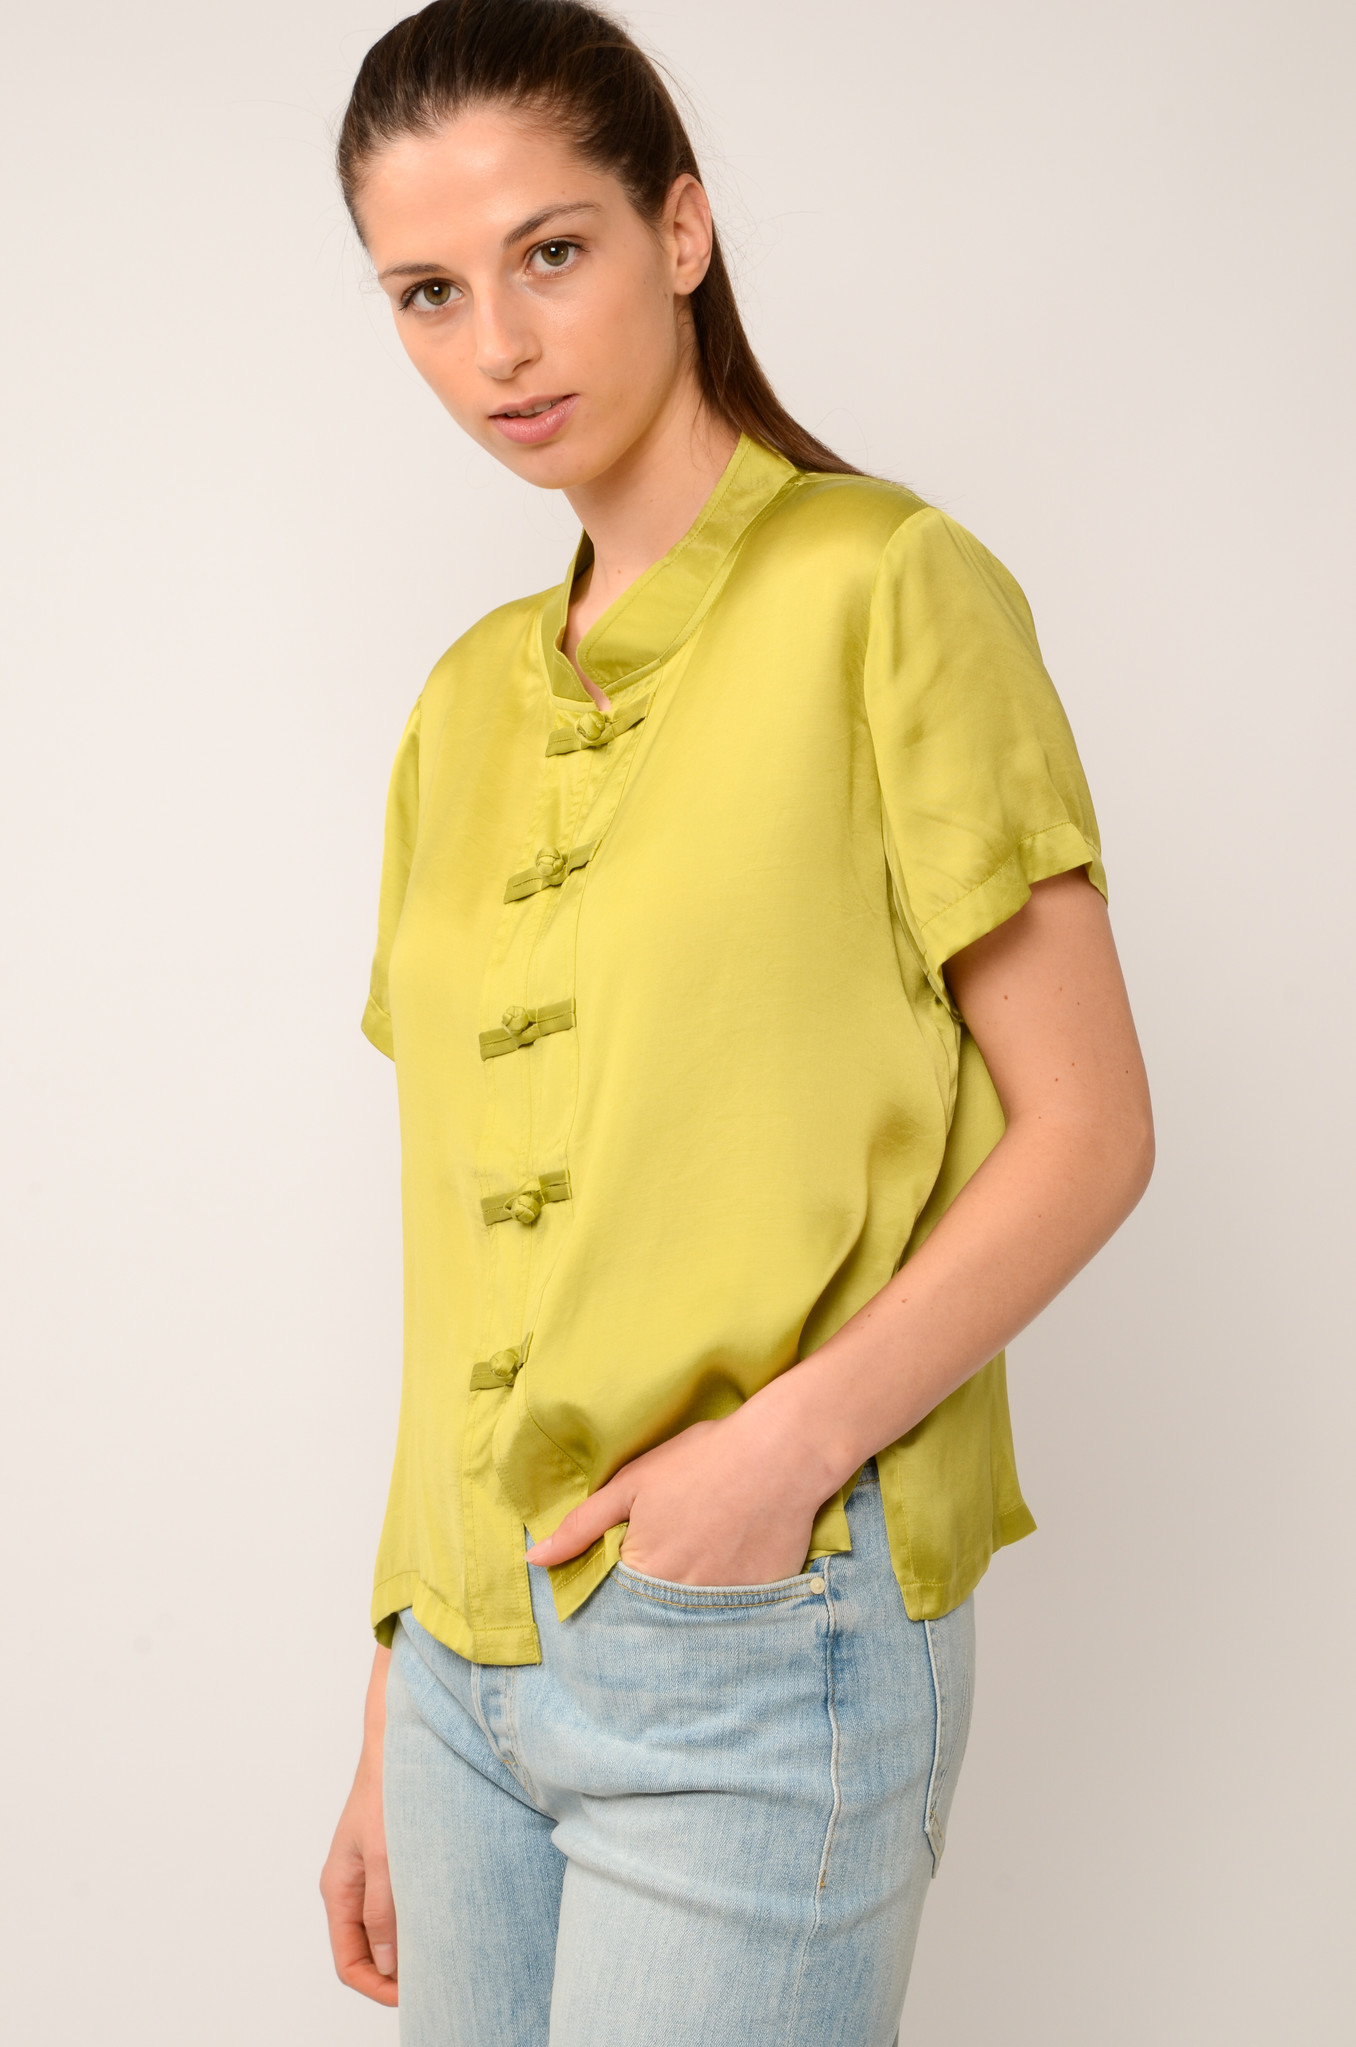 LOTUS TOP IN OLIVE-2